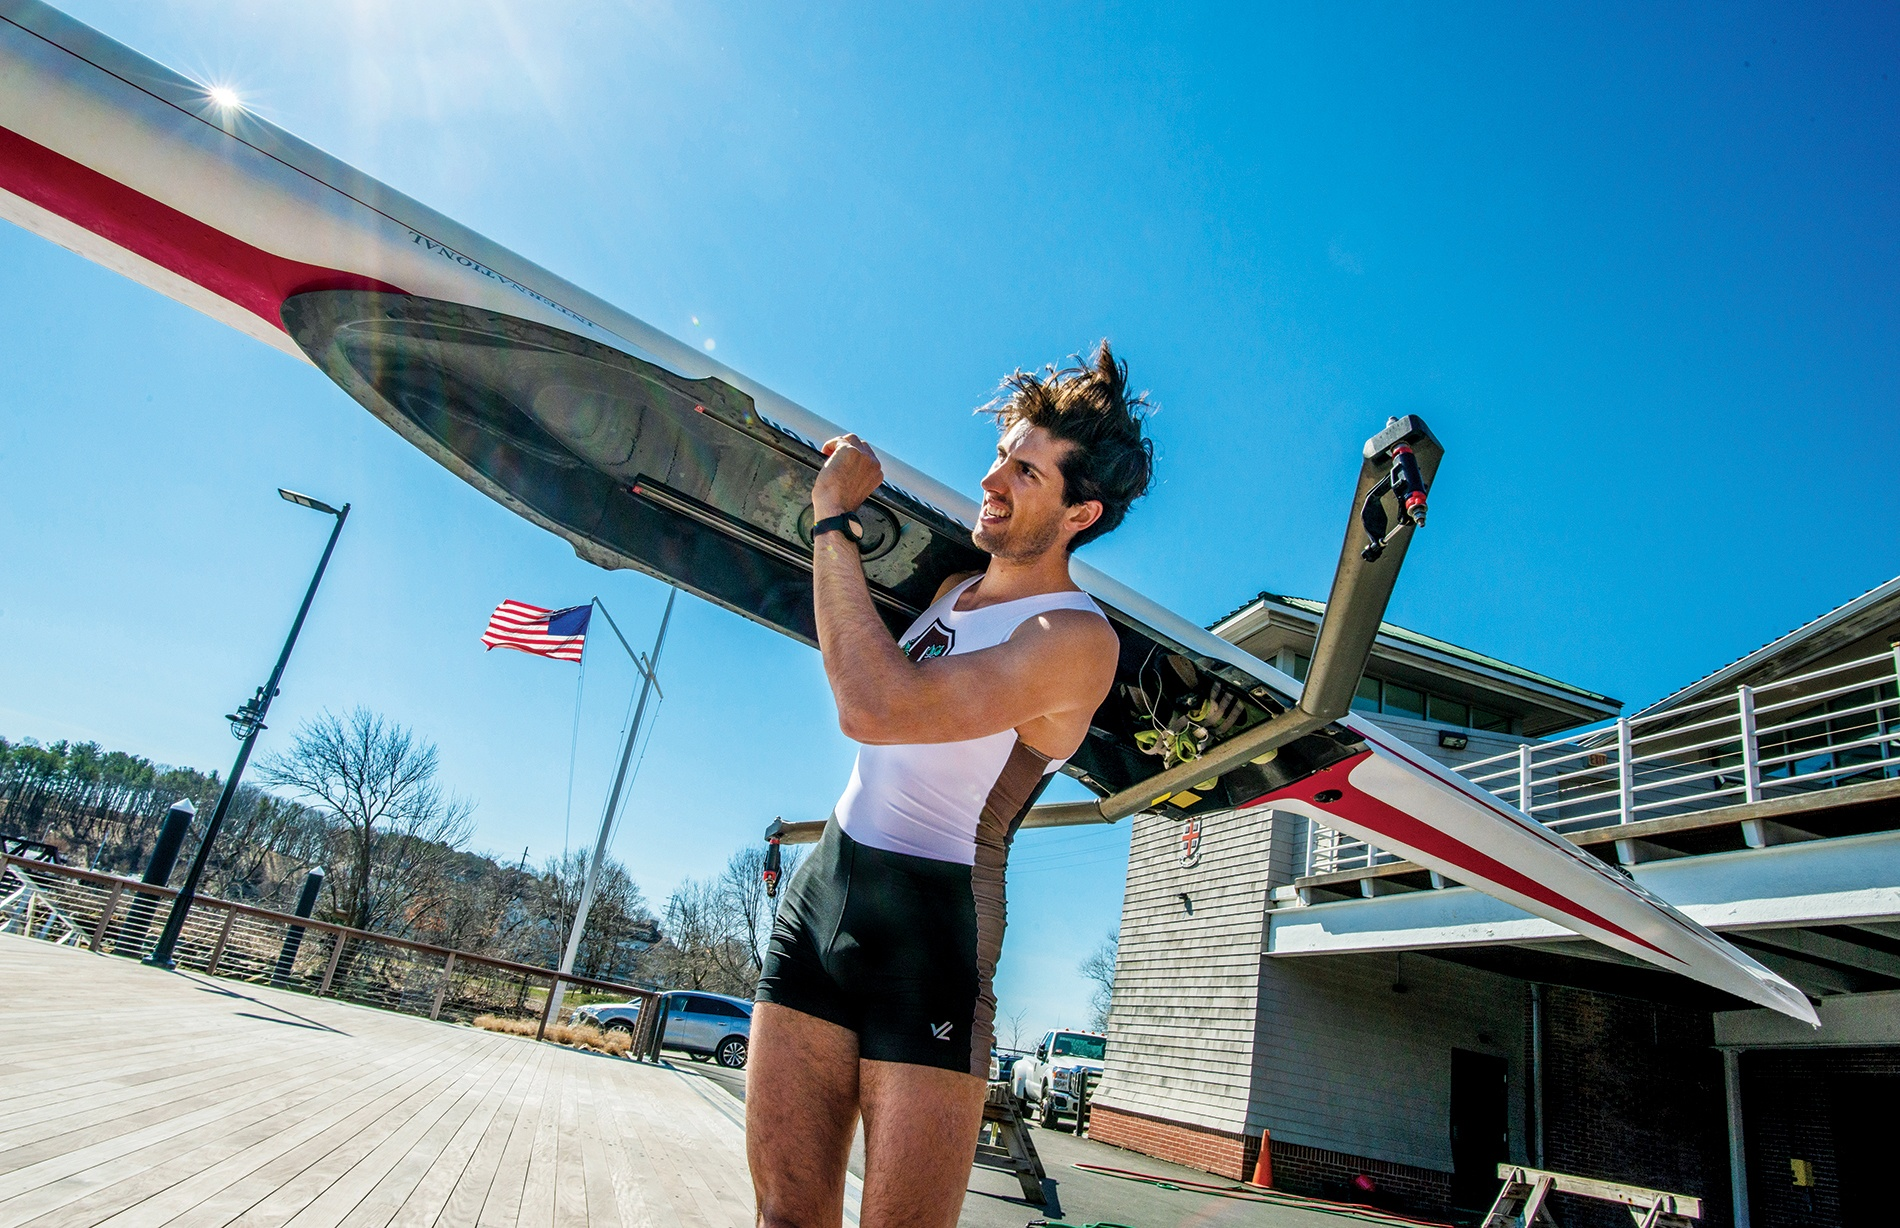 Photograph of Alex Miklasevich '19 holding a crew boat